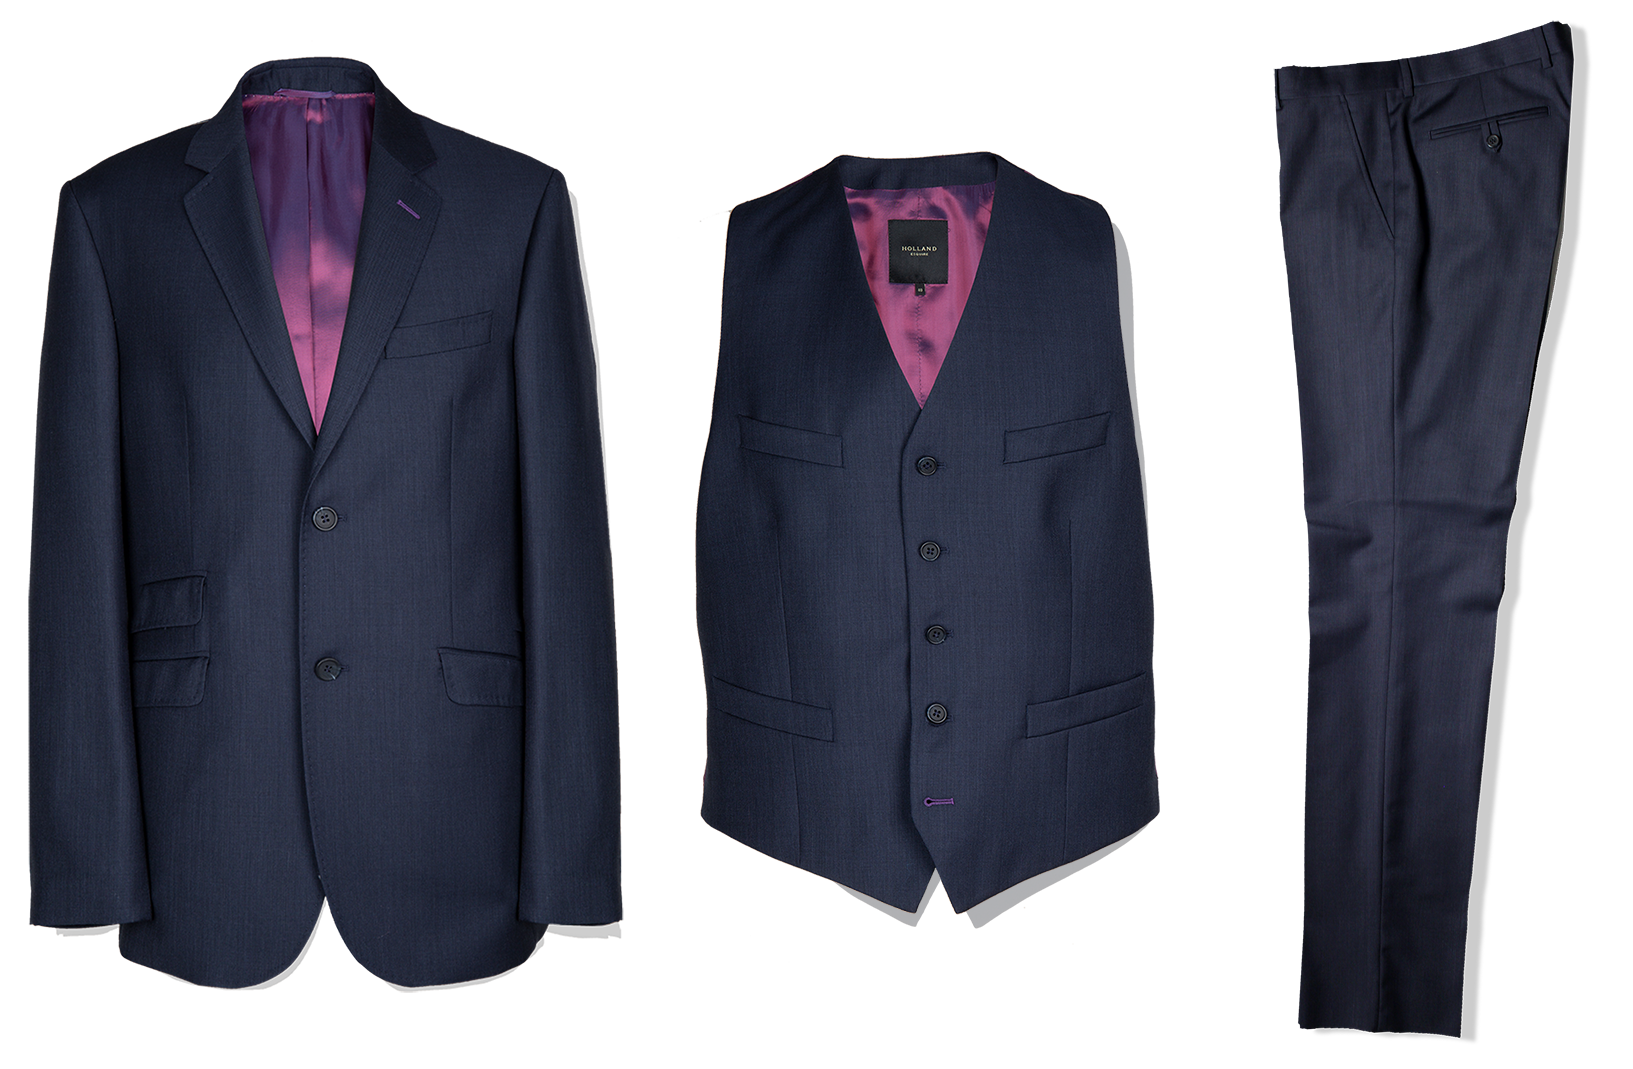 3 Piece Suit in Navy Birdseye - Holland Esquire